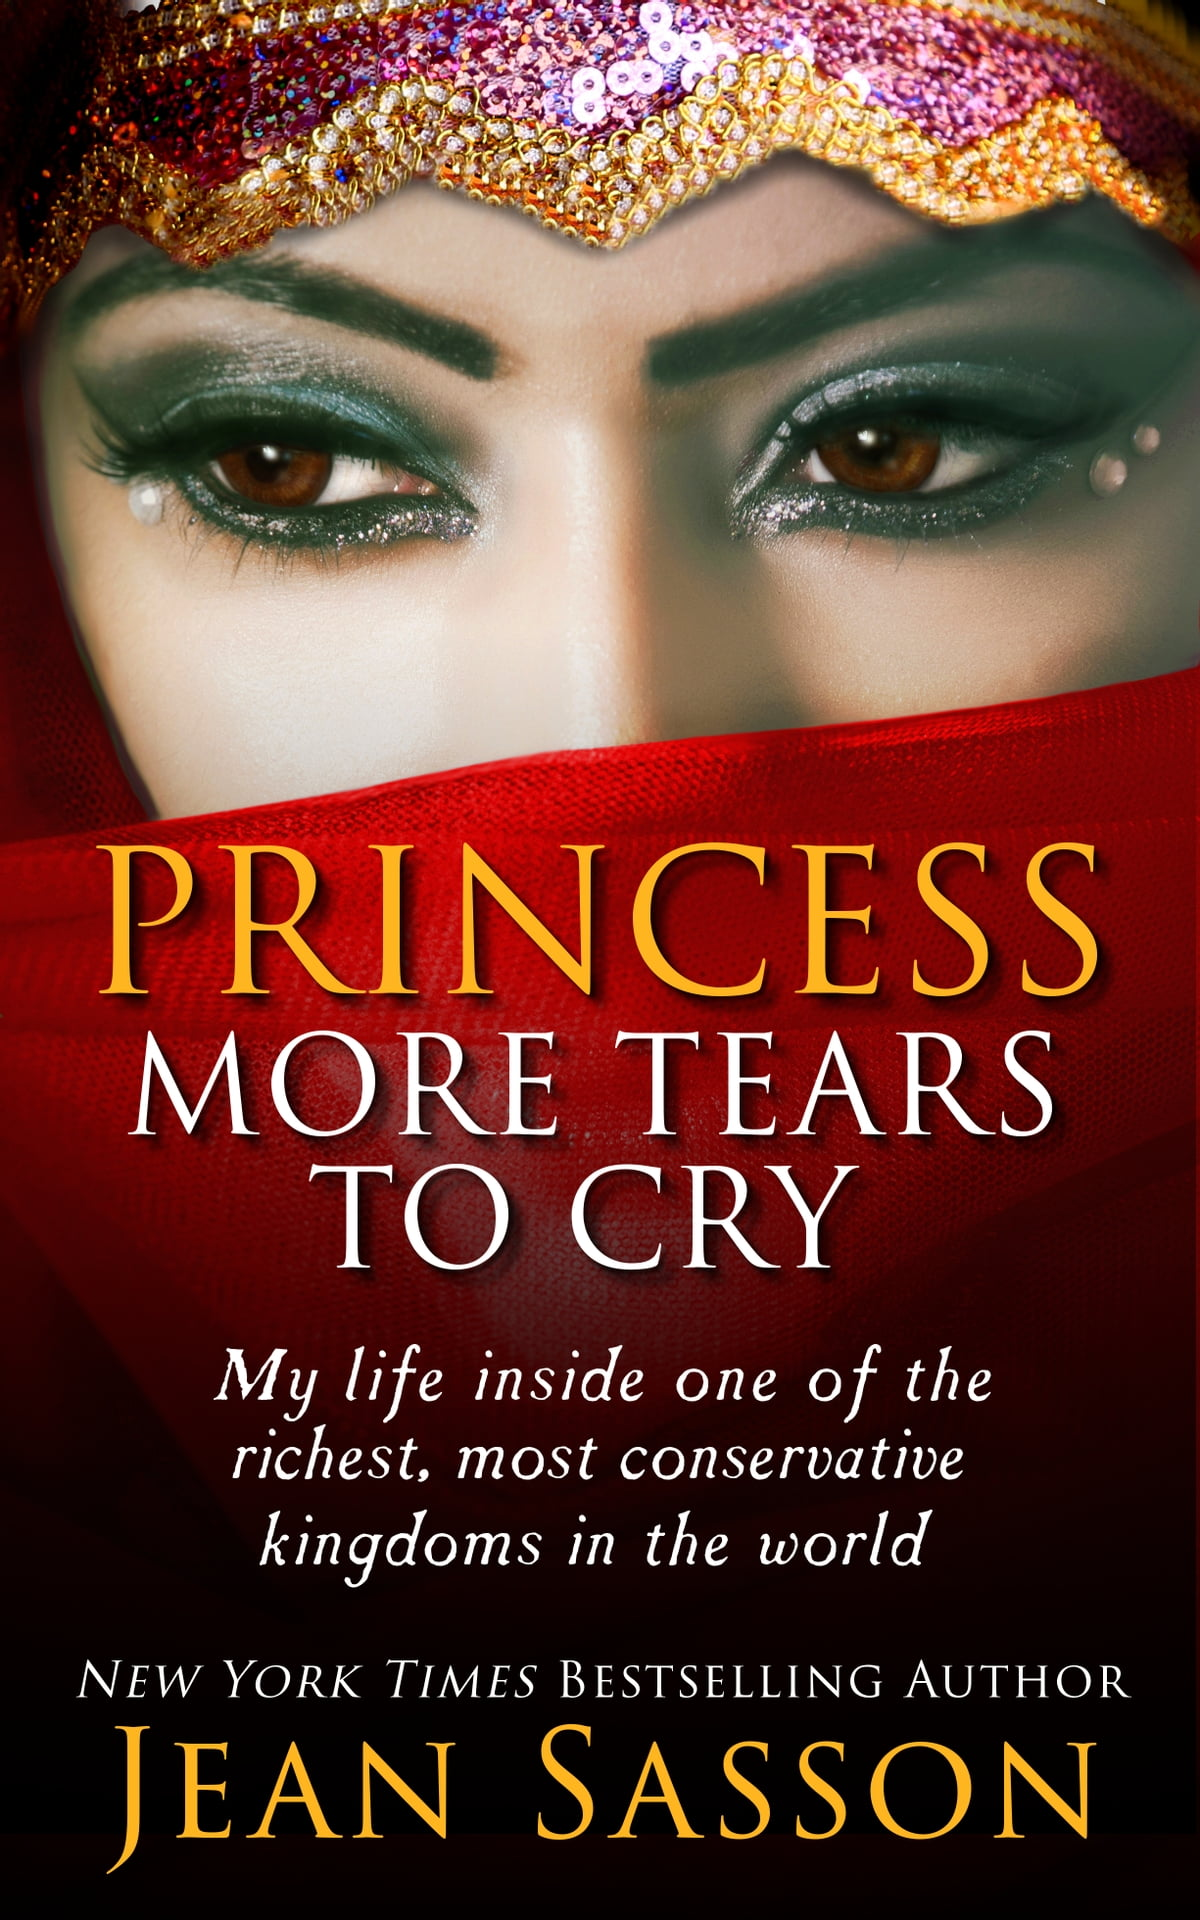 Princess a true story of life behind the veil ebook by jean sasson princess more tears to cry ebook by jean sasson fandeluxe Image collections